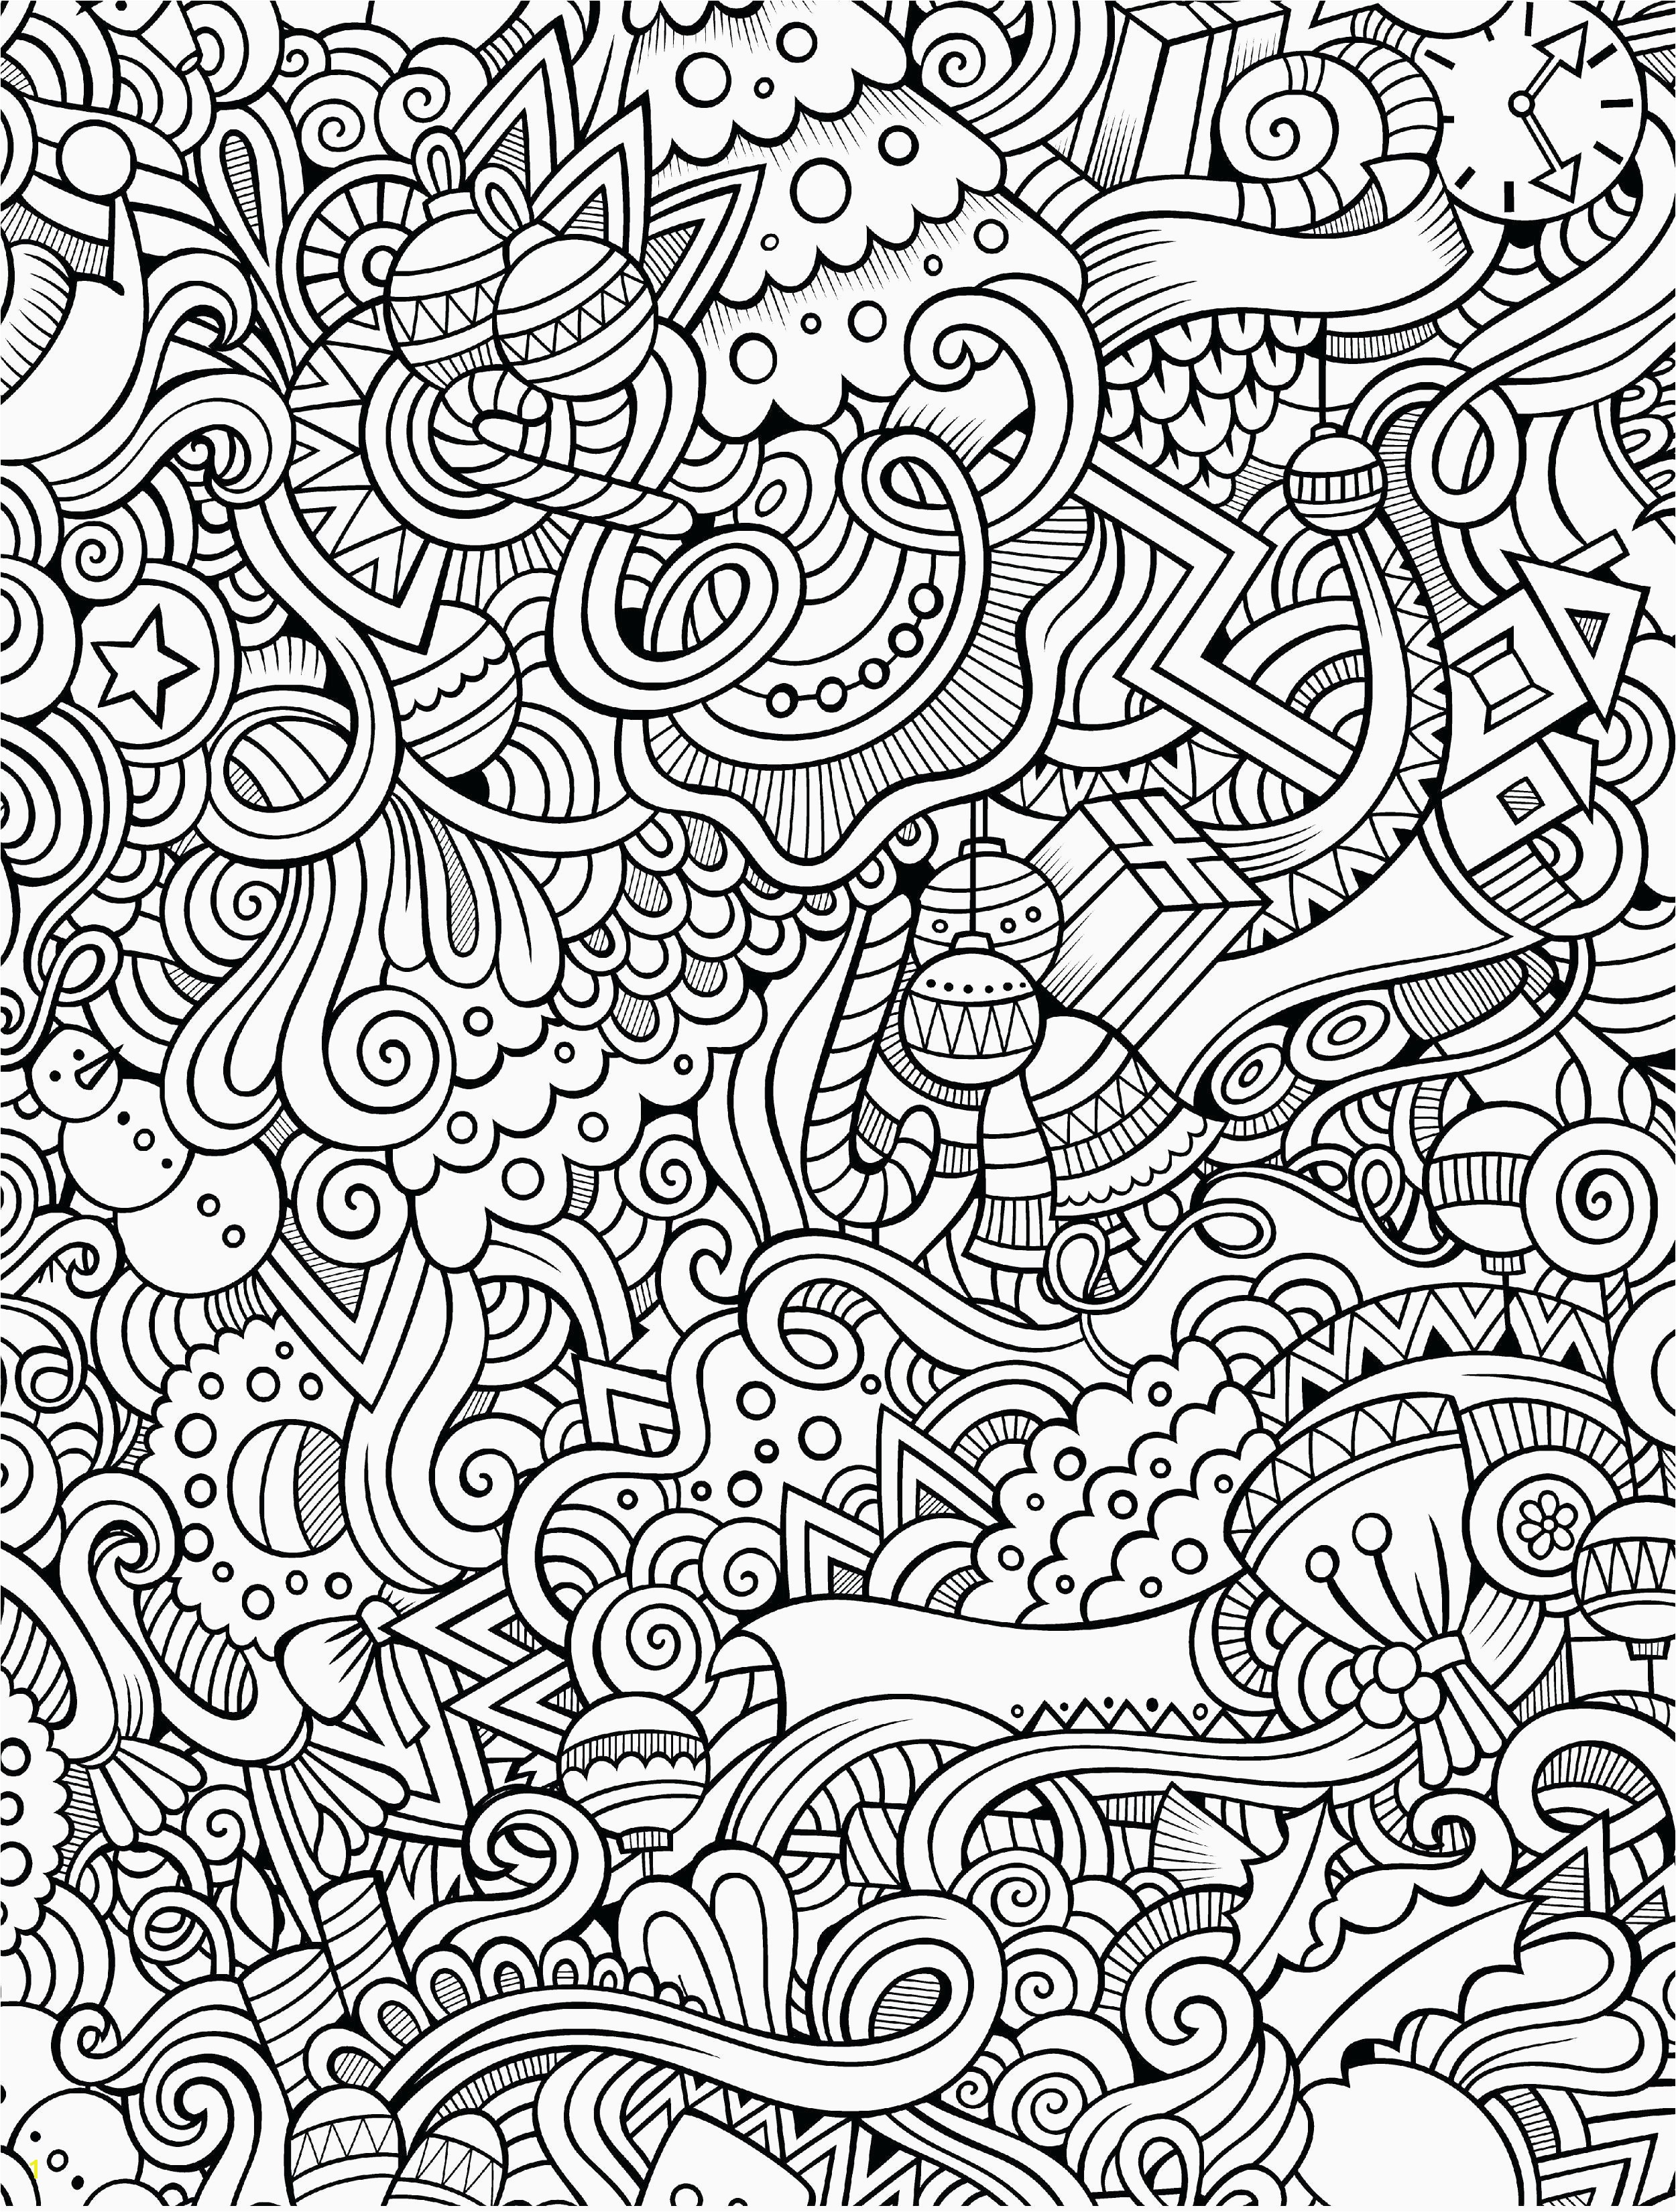 Free Printable Nature Coloring Pages for Adults Awesome Awesome Coloring Page for Adult Od Kids Simple